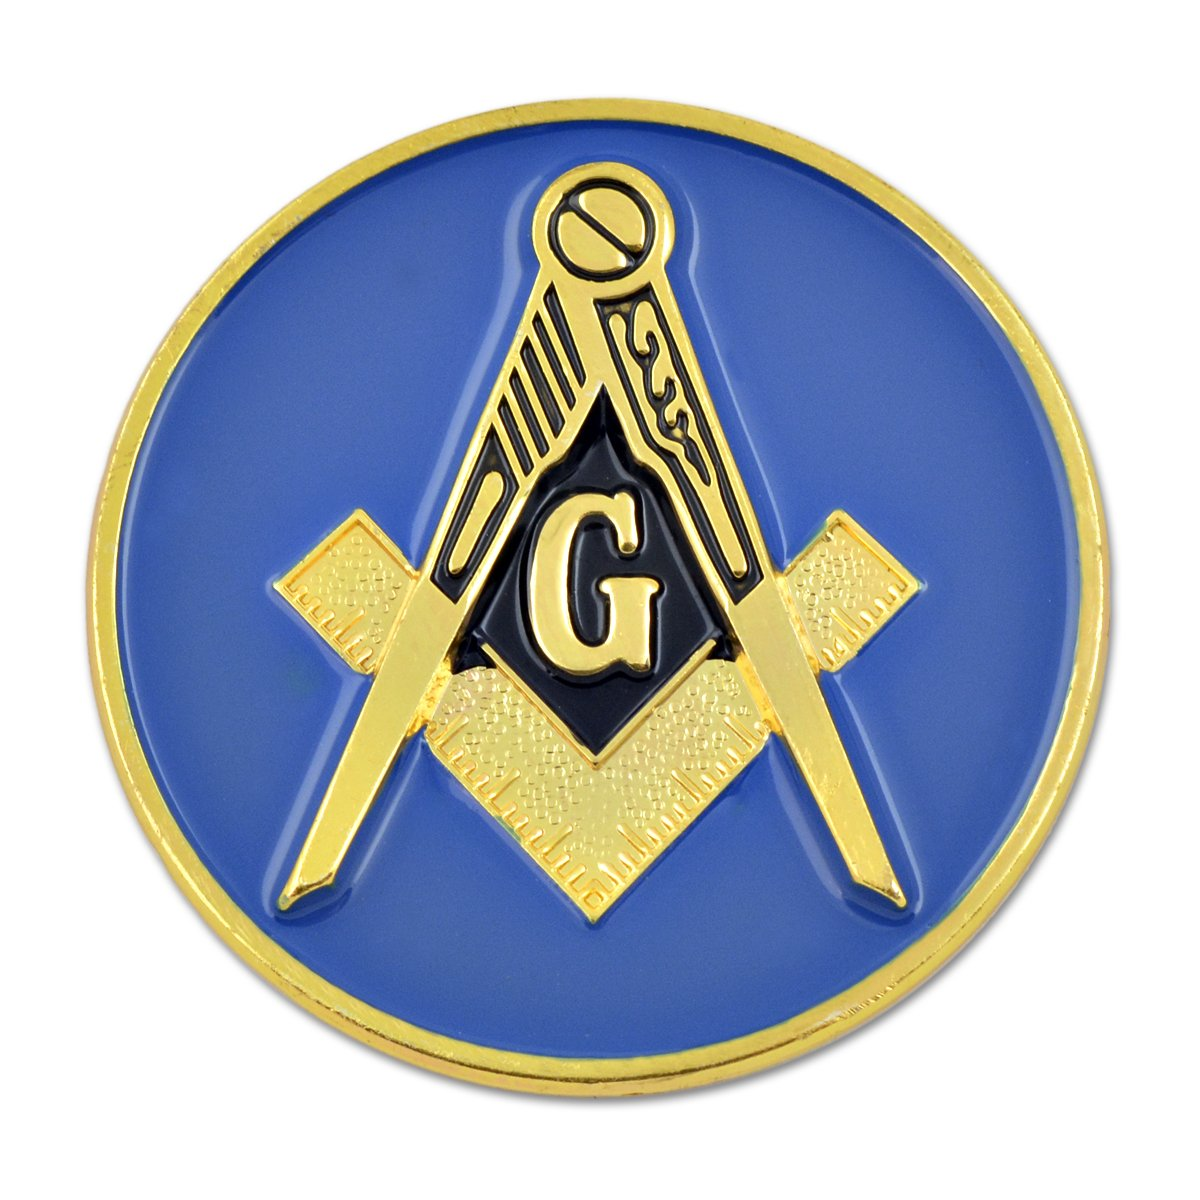 2 Diameter The Masonic Exchange TME-EMB-00022 Square /& Compass Round Blue /& Gold Masonic Auto Emblem